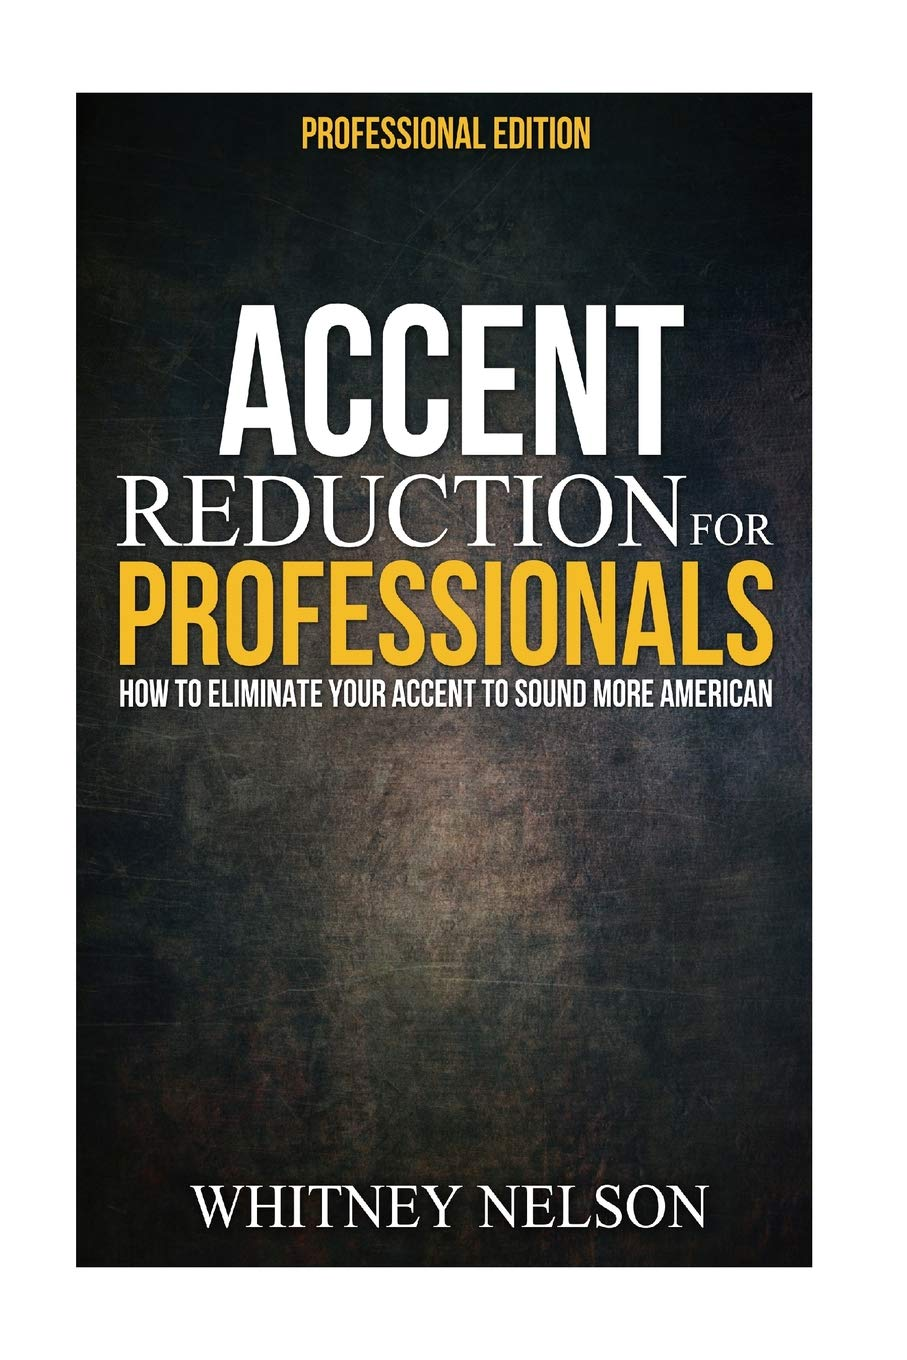 Accent Reduction For Professionals: How to Eliminate Your Accent